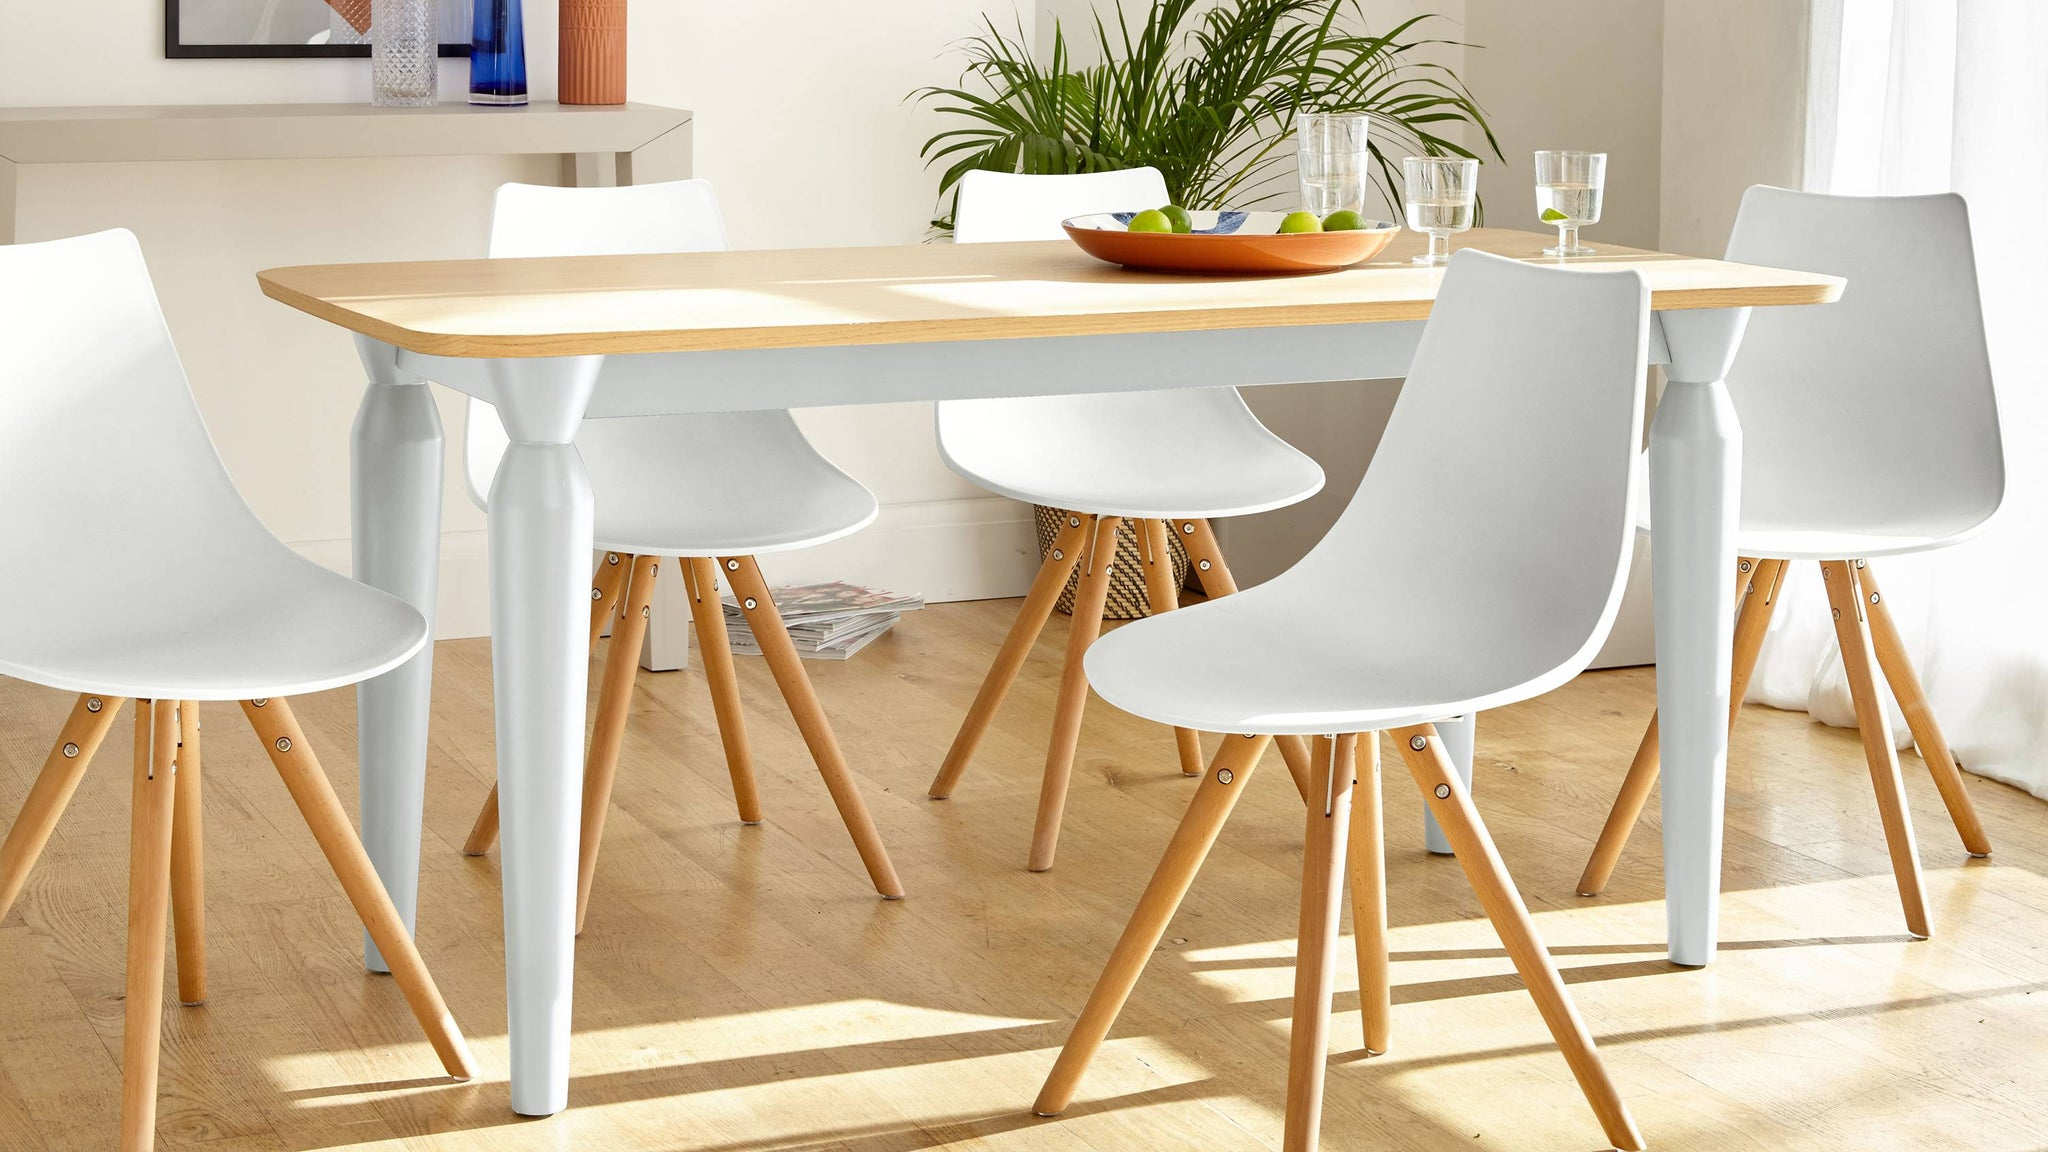 Matt white and wood modern country table